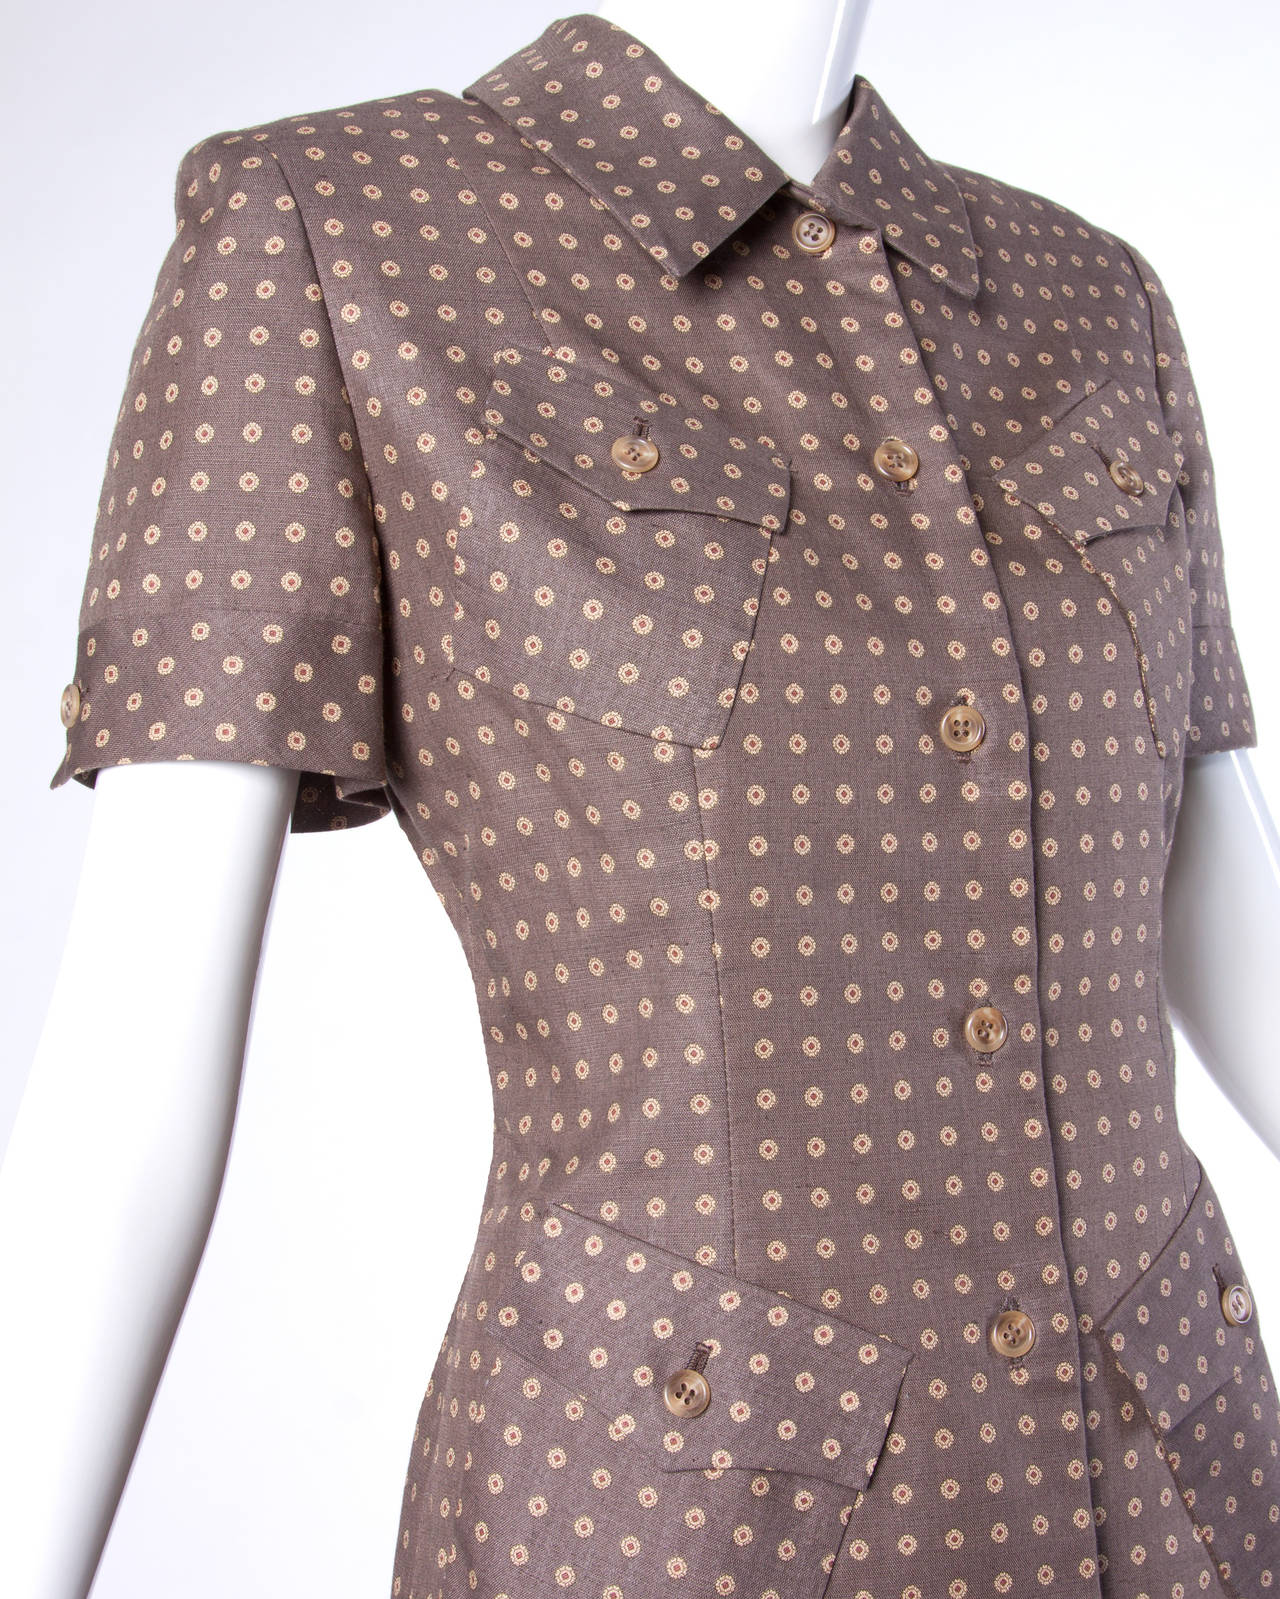 Brown wool tailored skirt suit with the original tags still attached! By Bill Blass.  Details:  Fully Lined Shoulder Pads Sewn Into Lining Button Closure on Jacket/ Side Zip and Hook Closure on Skirt Marked Size: 10 Estimated Size: